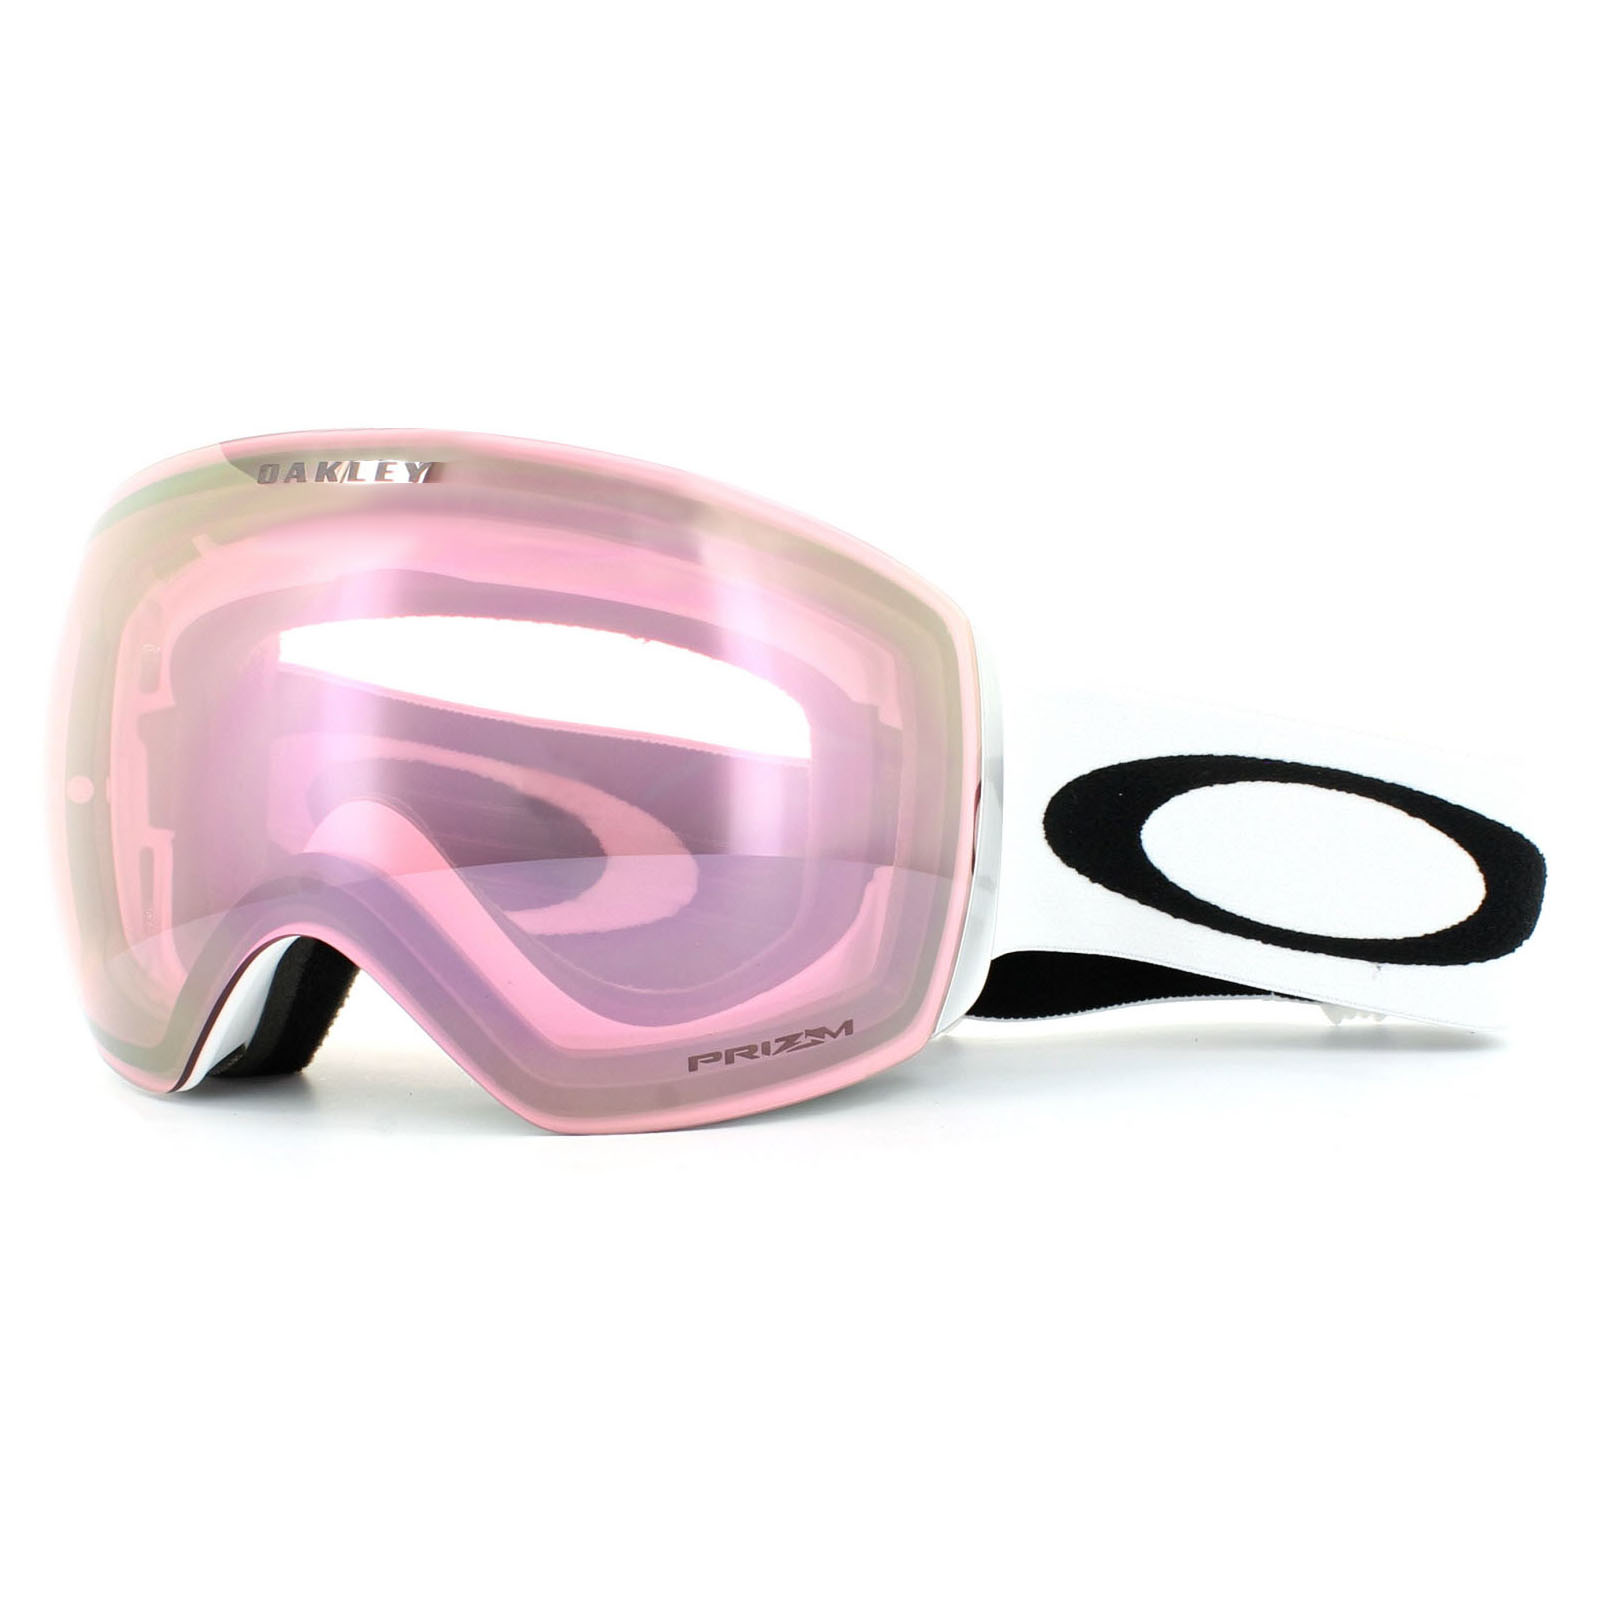 flight deck ski goggles  Oakley Ski Goggles Flight Deck OO7050-38 Matt White Prizm HI Pink ...